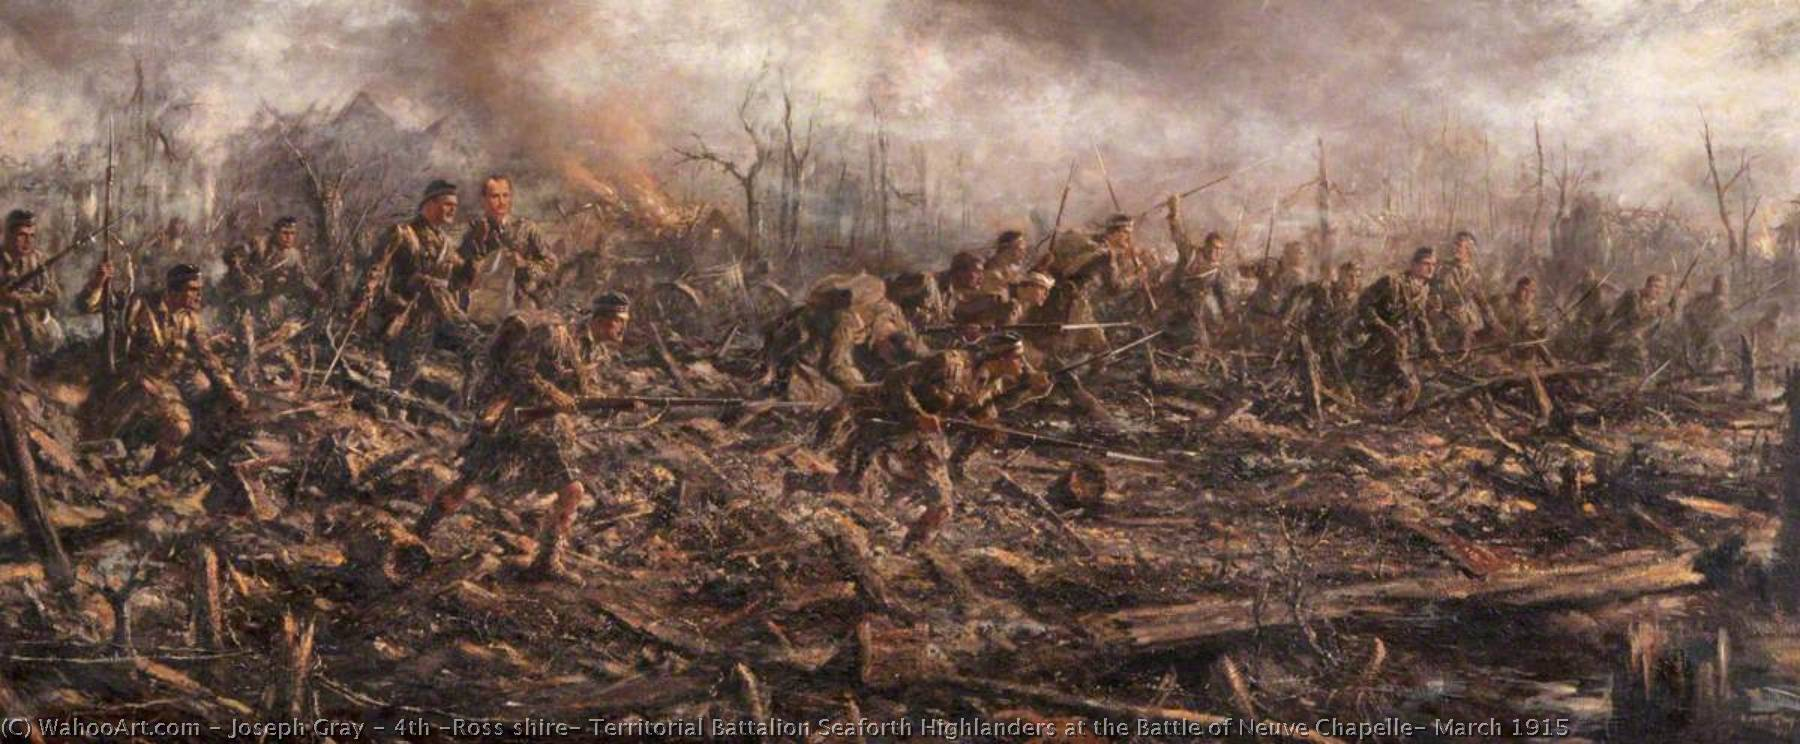 4th (Ross shire) Territorial Battalion Seaforth Highlanders at the Battle of Neuve Chapelle, March 1915, 1920 by Joseph Gray | Paintings Reproductions Joseph Gray | WahooArt.com